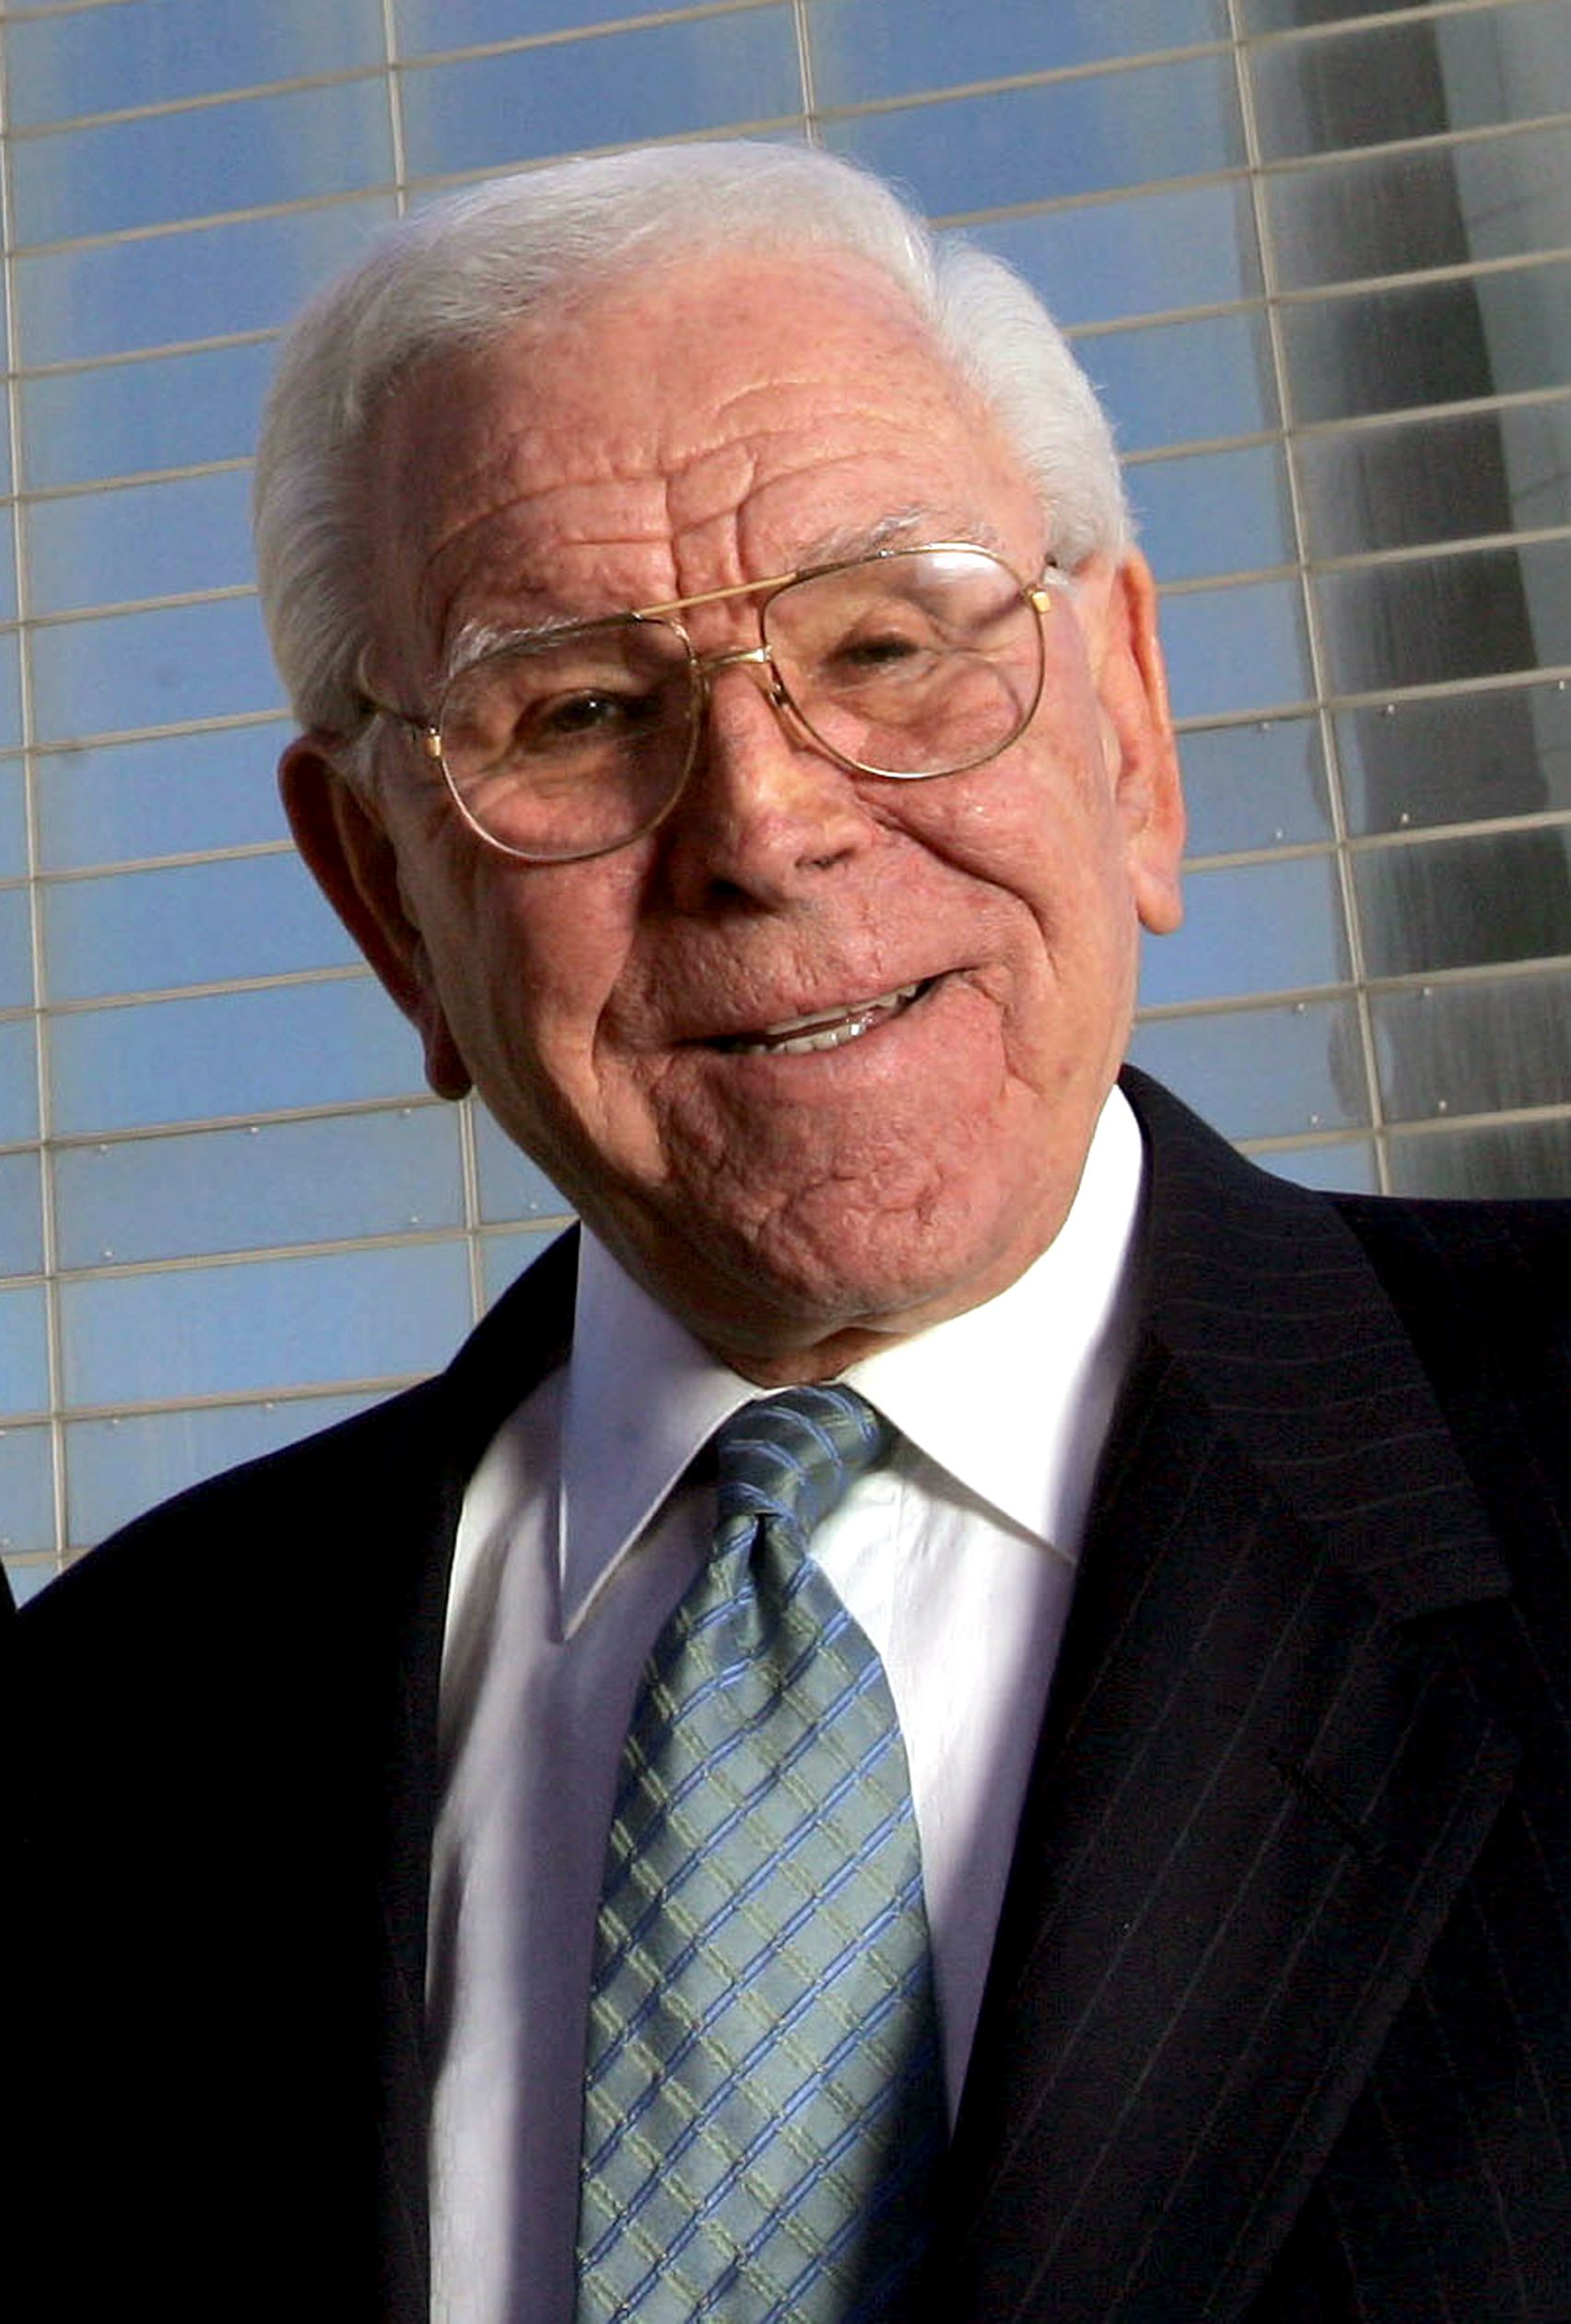 In this Feb. 9, 2006 file photo, Rev. Robert H. Schuller poses for a photo outside the Crystal Cathedral in Orange, Calif.